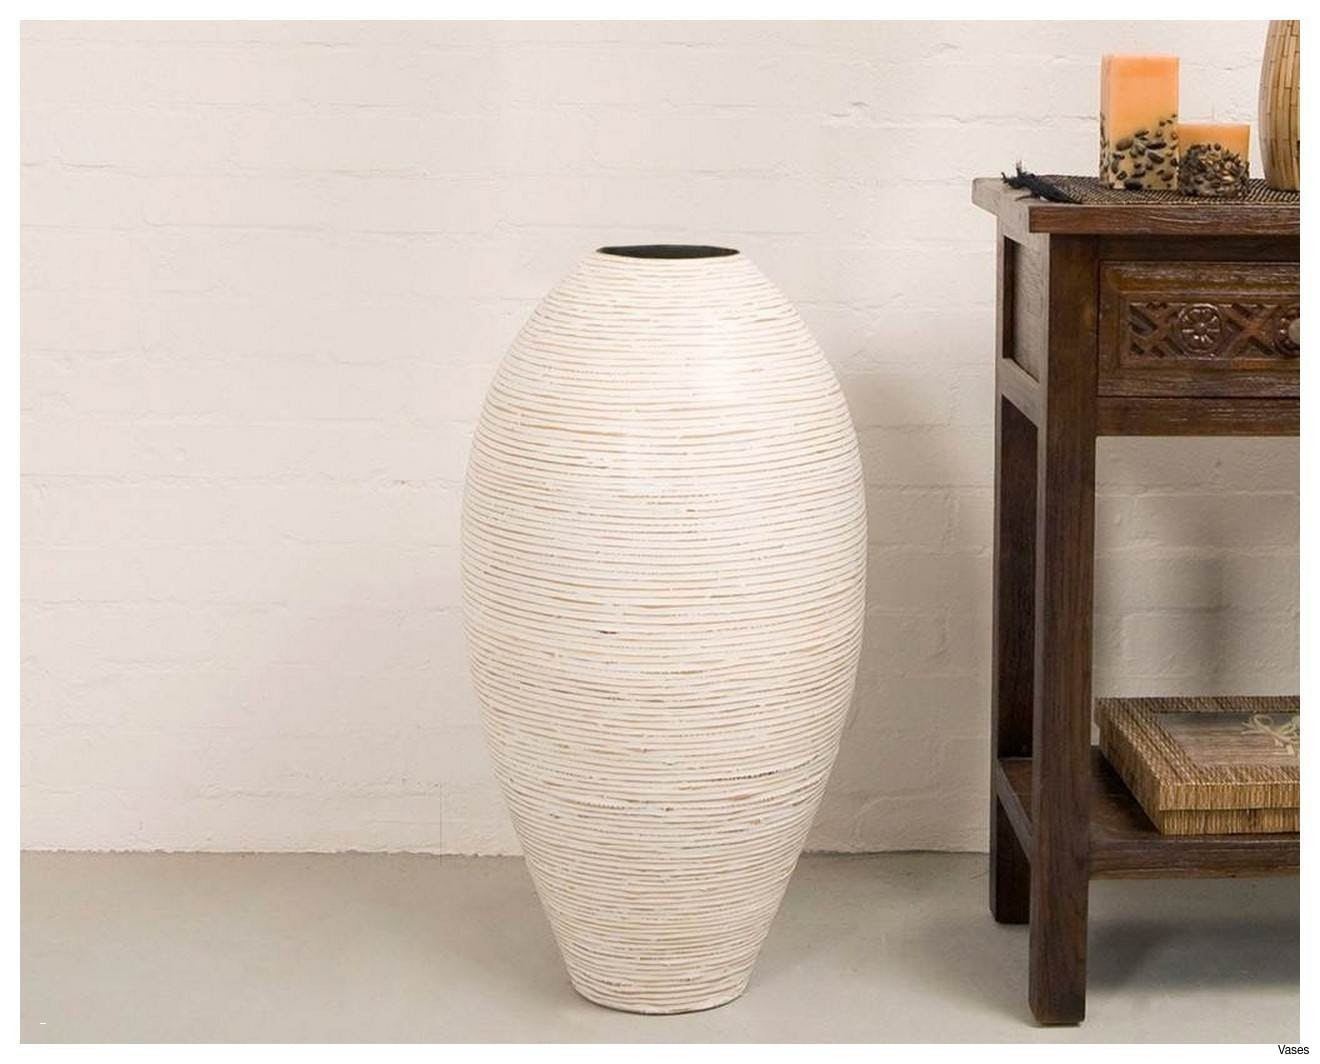 vase with cover of standing lamps ikea elegant pe s5h vases floor ikea i 0d tall for standing lamps ikea elegant pe s5h vases floor ikea i 0d tall michaels scheme ikea decor